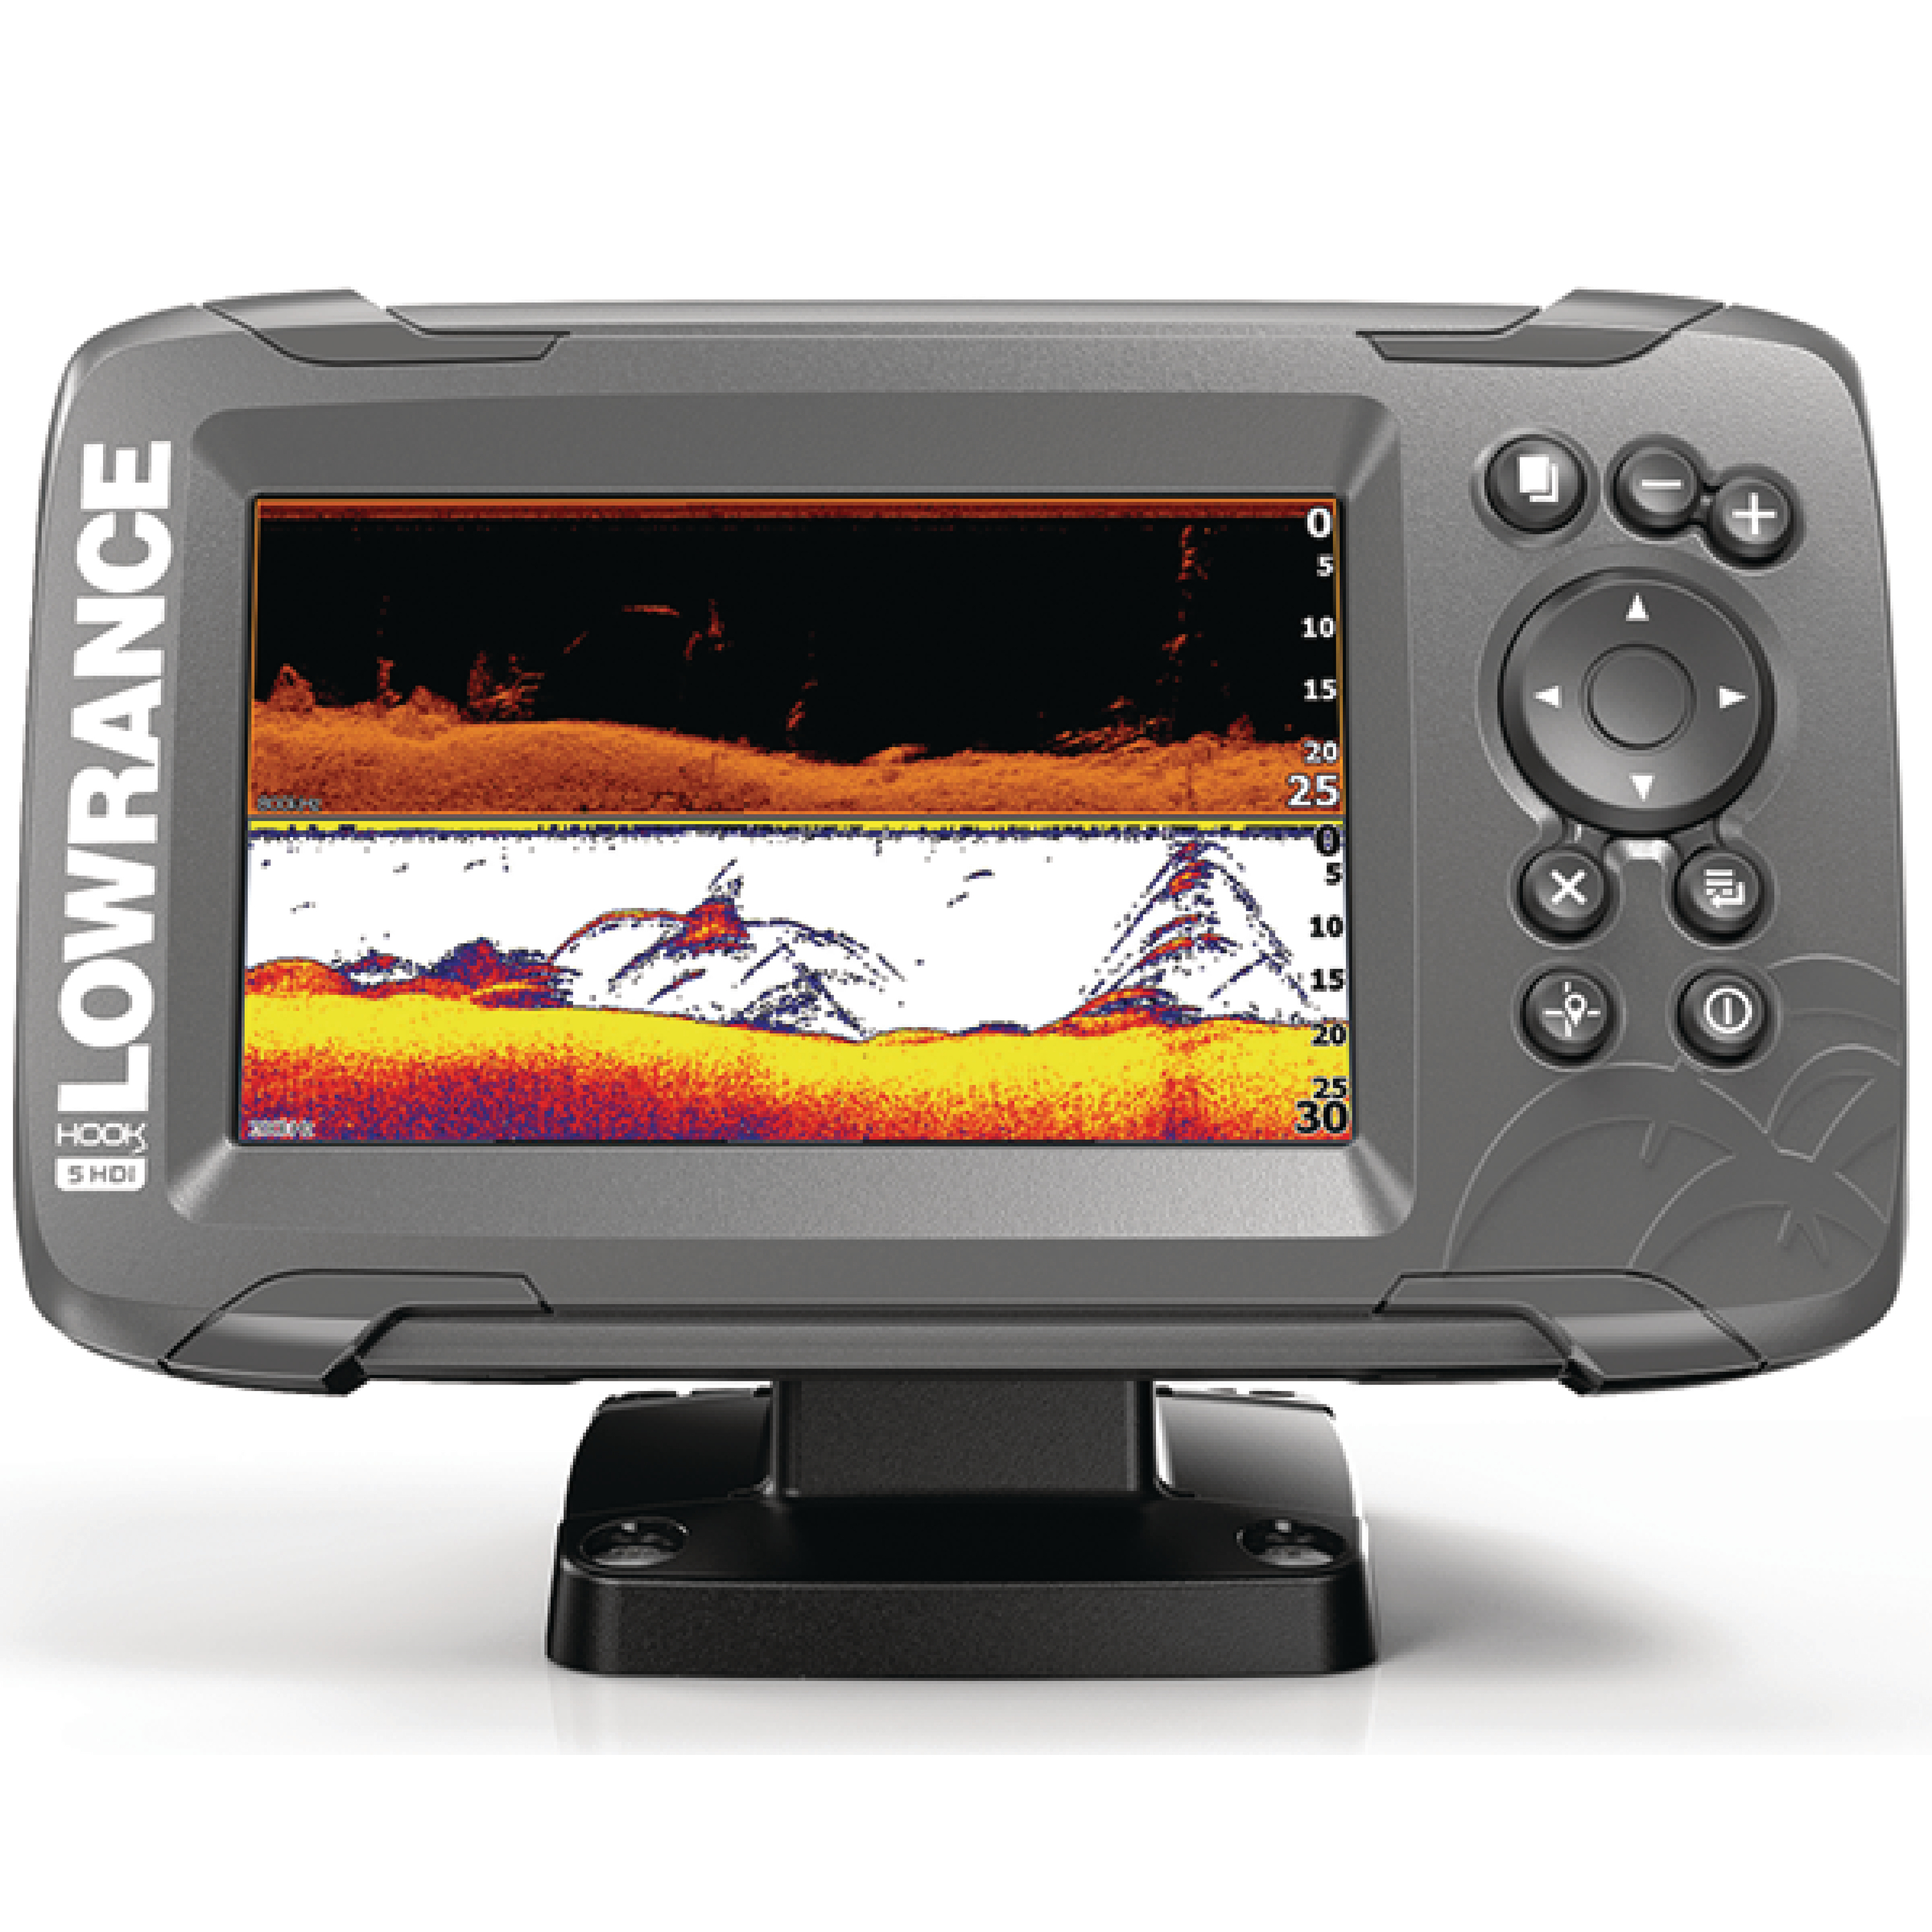 "Lowrance 000-14281-001 HOOK 5 Fishfinder with SplitShot Transducer, US Inland Maps, CHIRP Sonar, DownScan Imaging & 5"" Display"